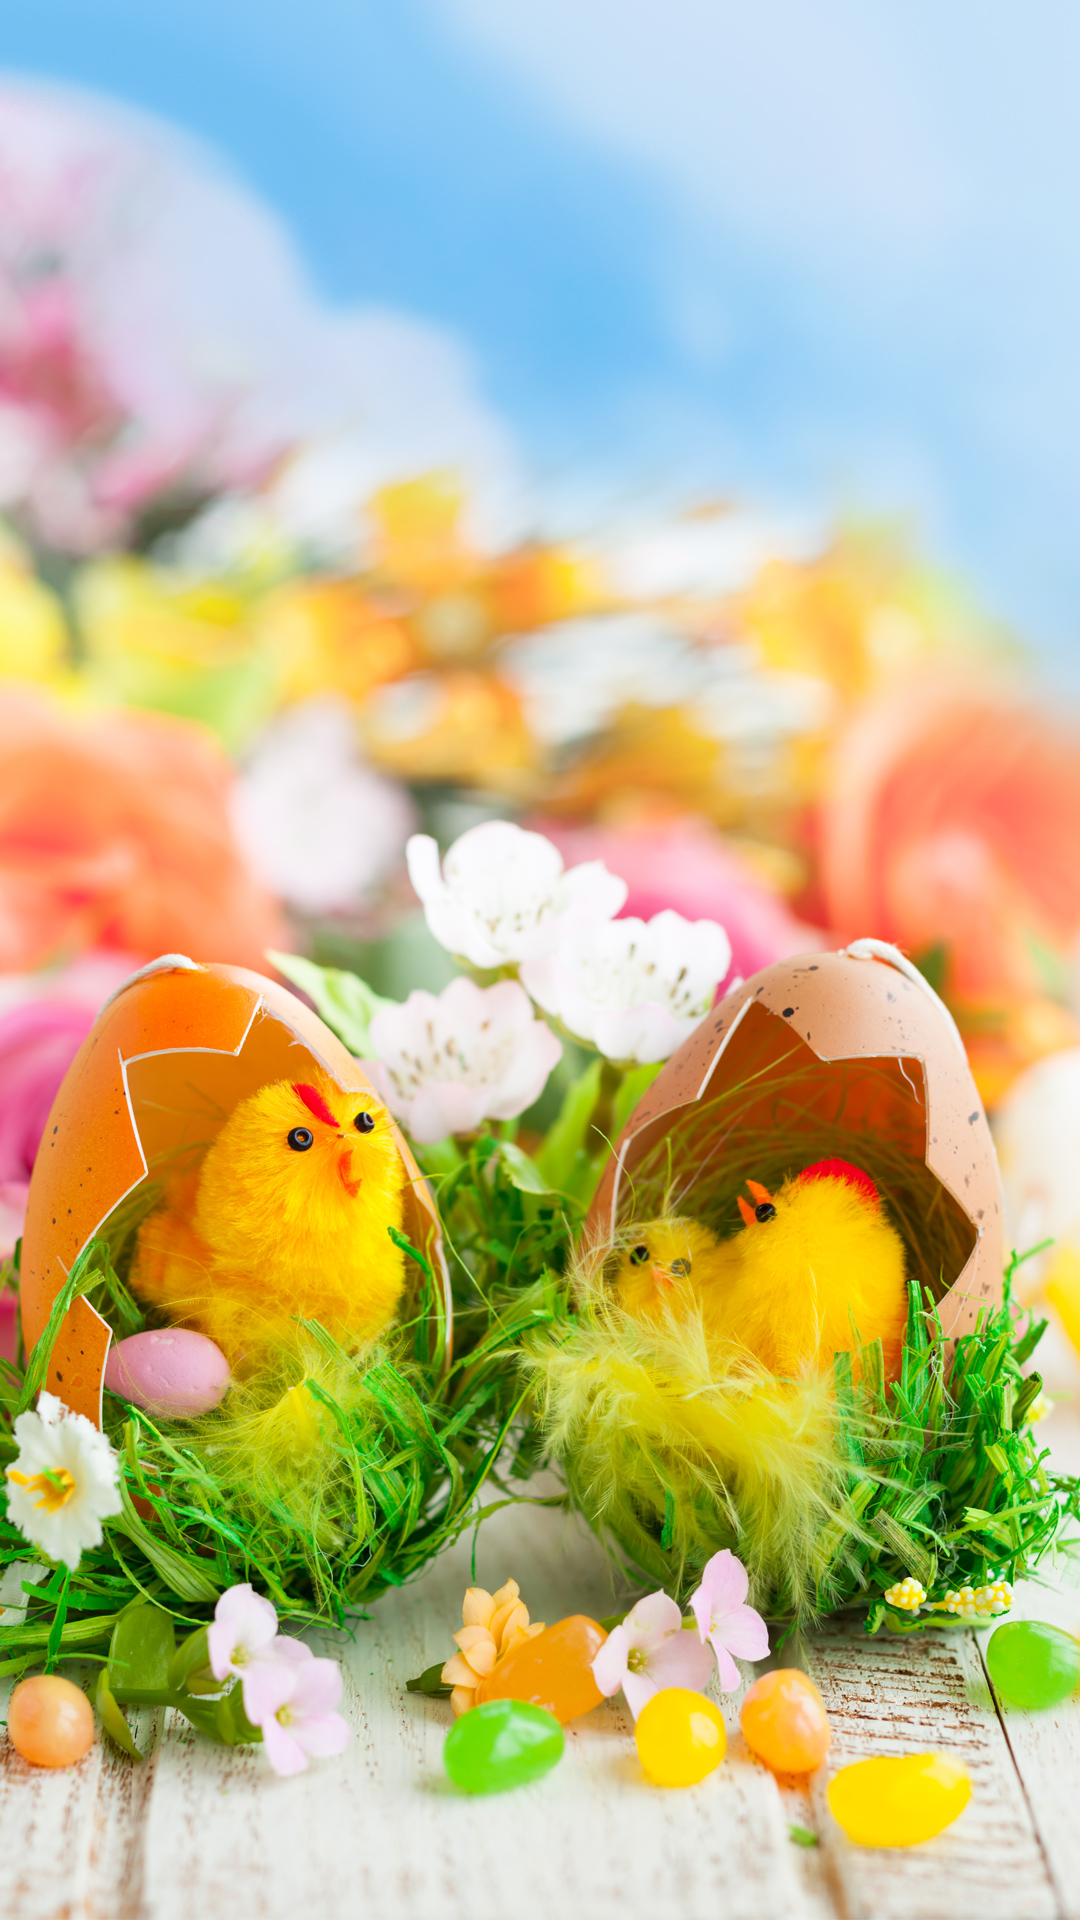 iPhone 6S Plus Easter Wallpaper | Gallery Yopriceville - High-Quality Images and Transparent PNG ...